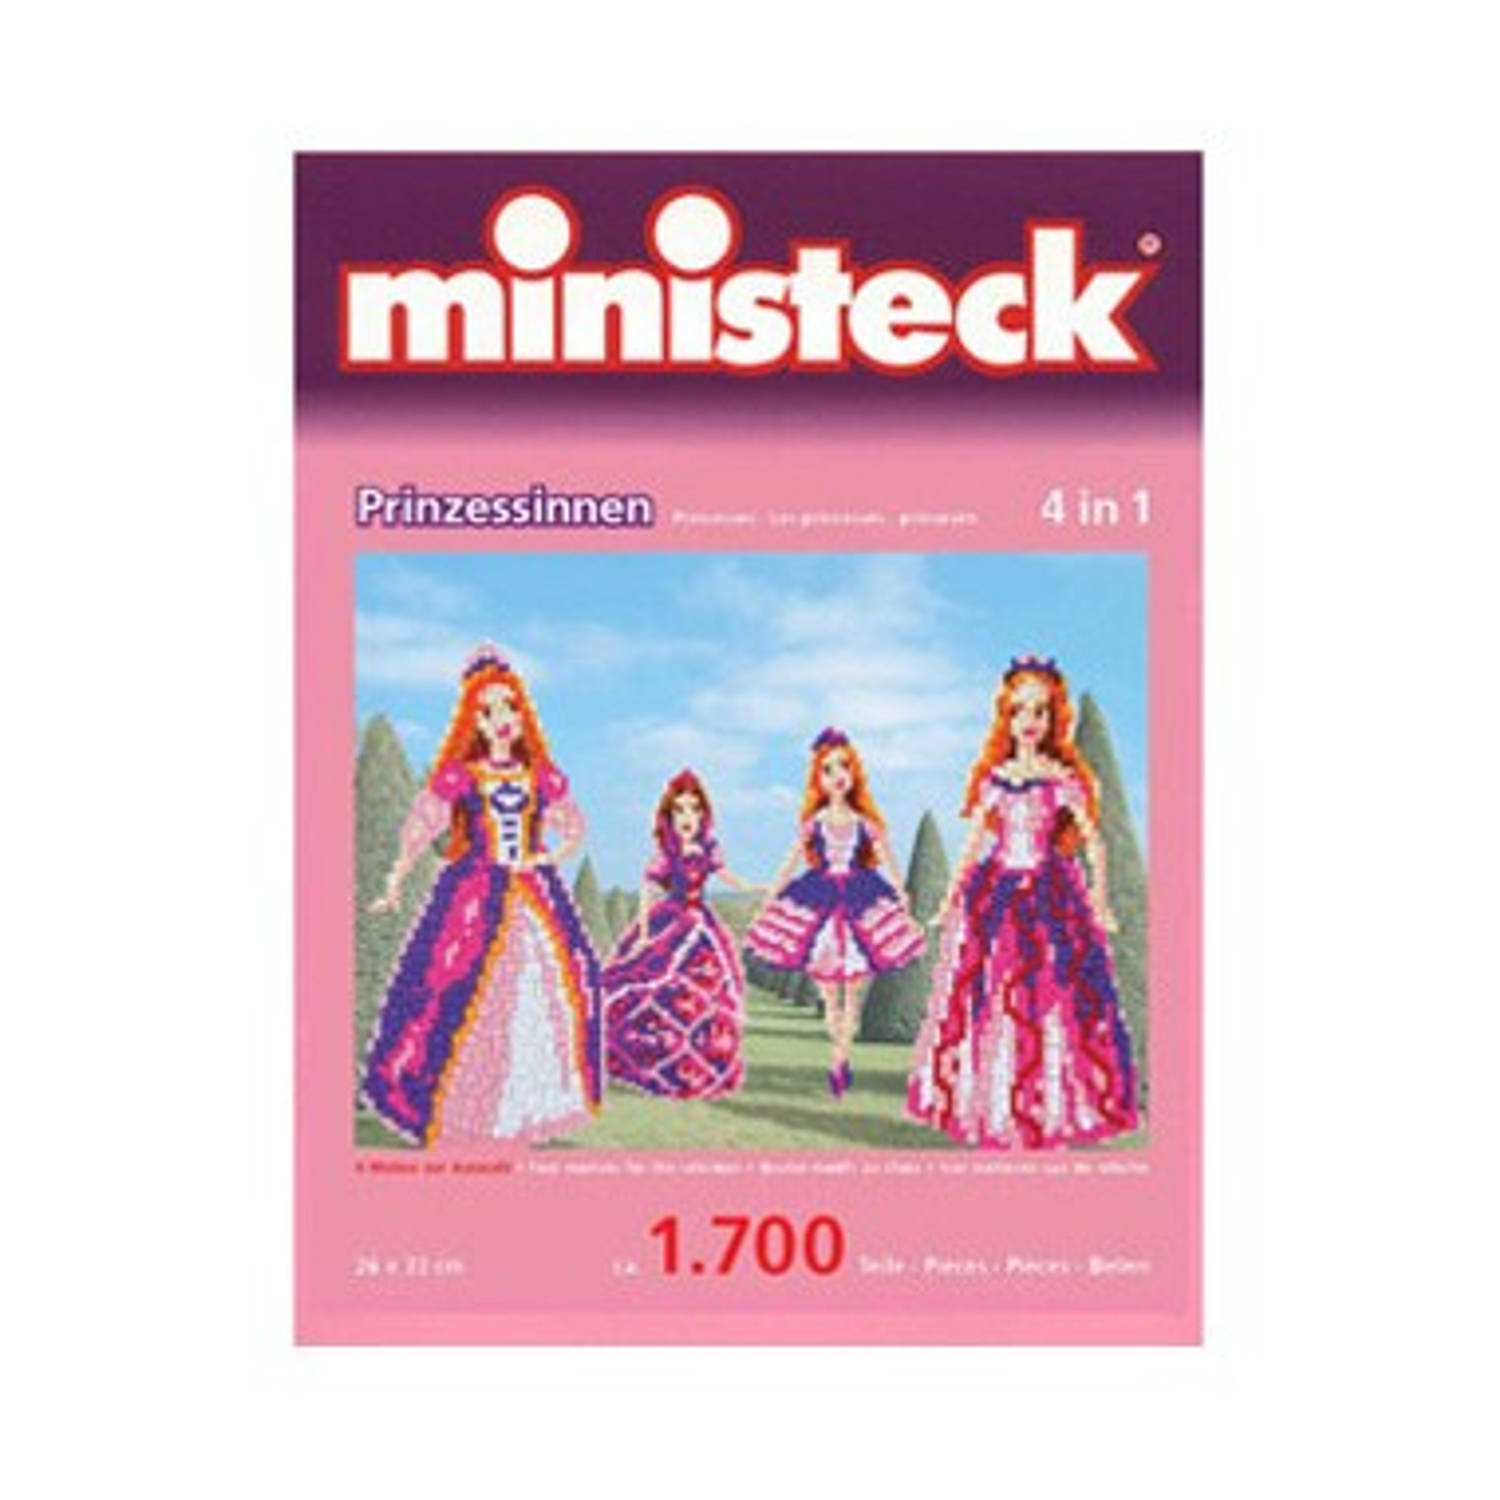 Ministeck Prinsessen 4-in-1